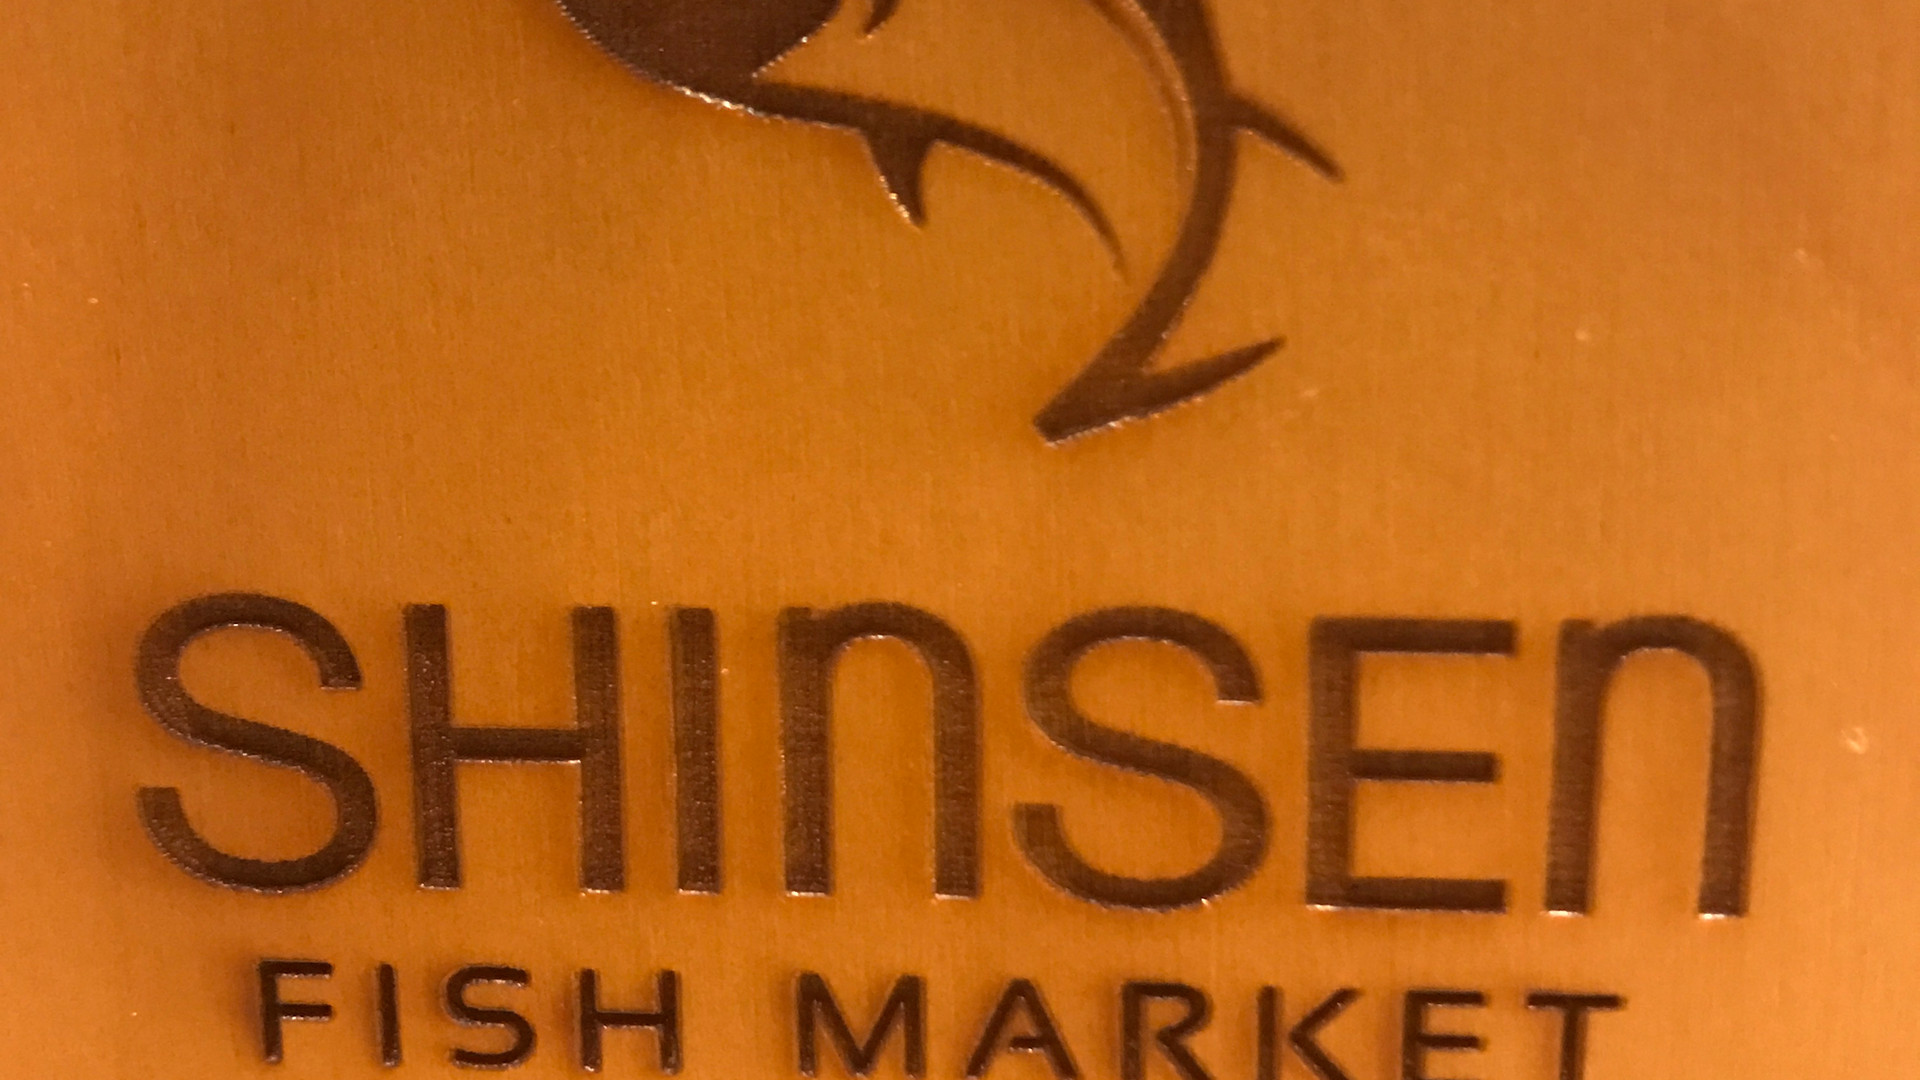 The Tuna-logo of Shinsen